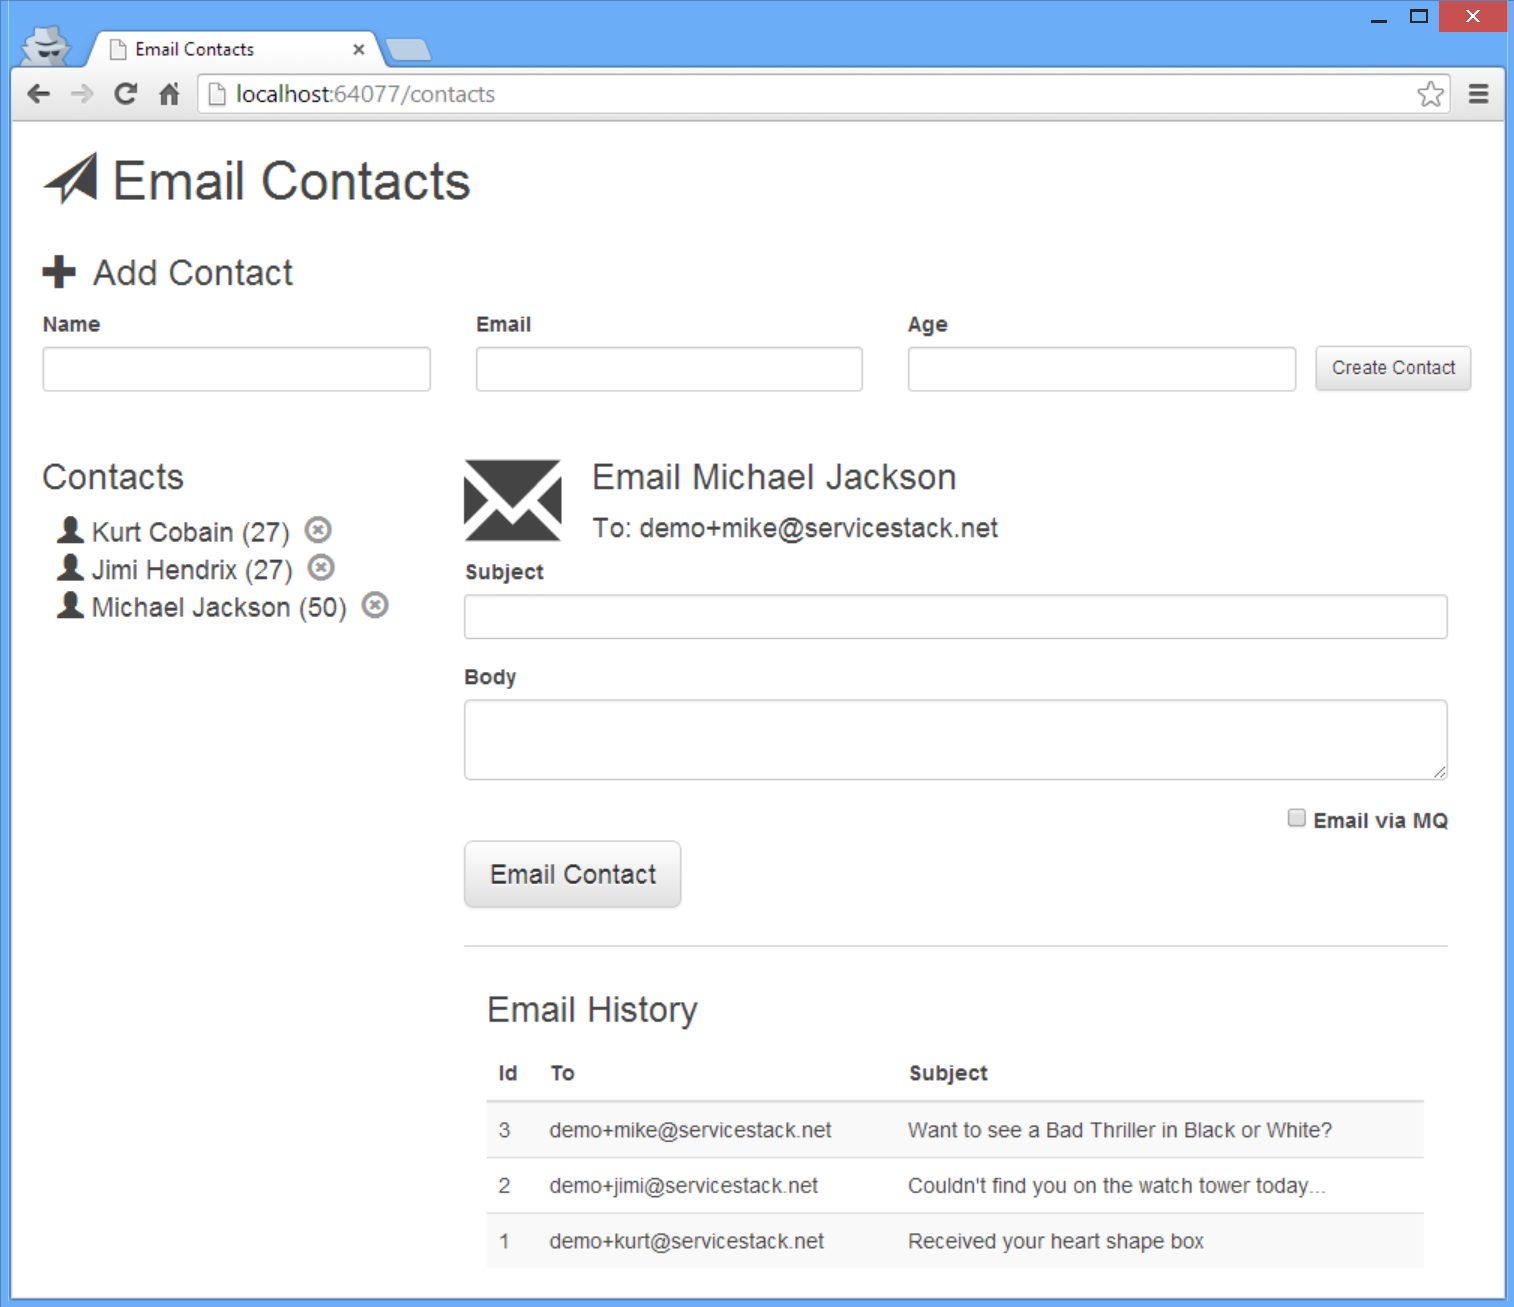 EmailContacts Screenshot